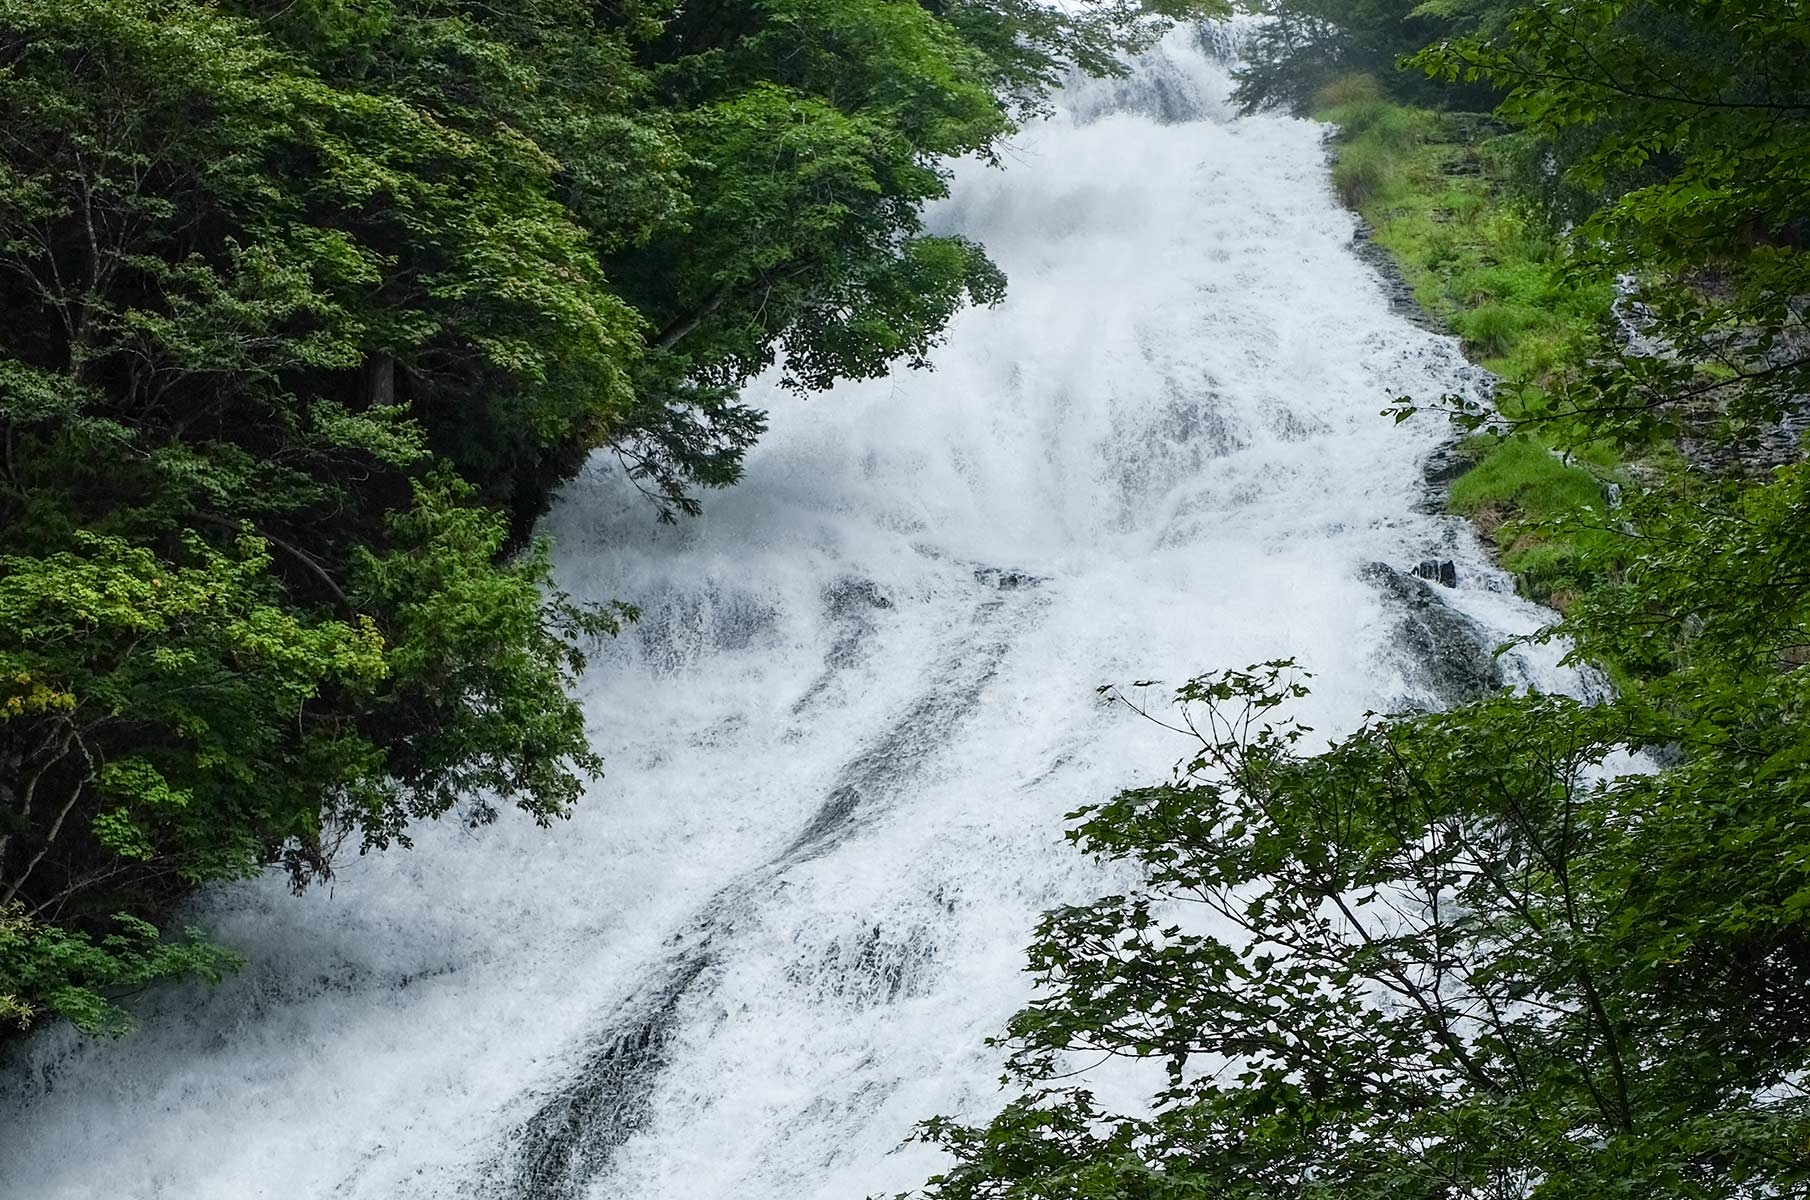 Yudaki Wasserfall in Nikko, Japan